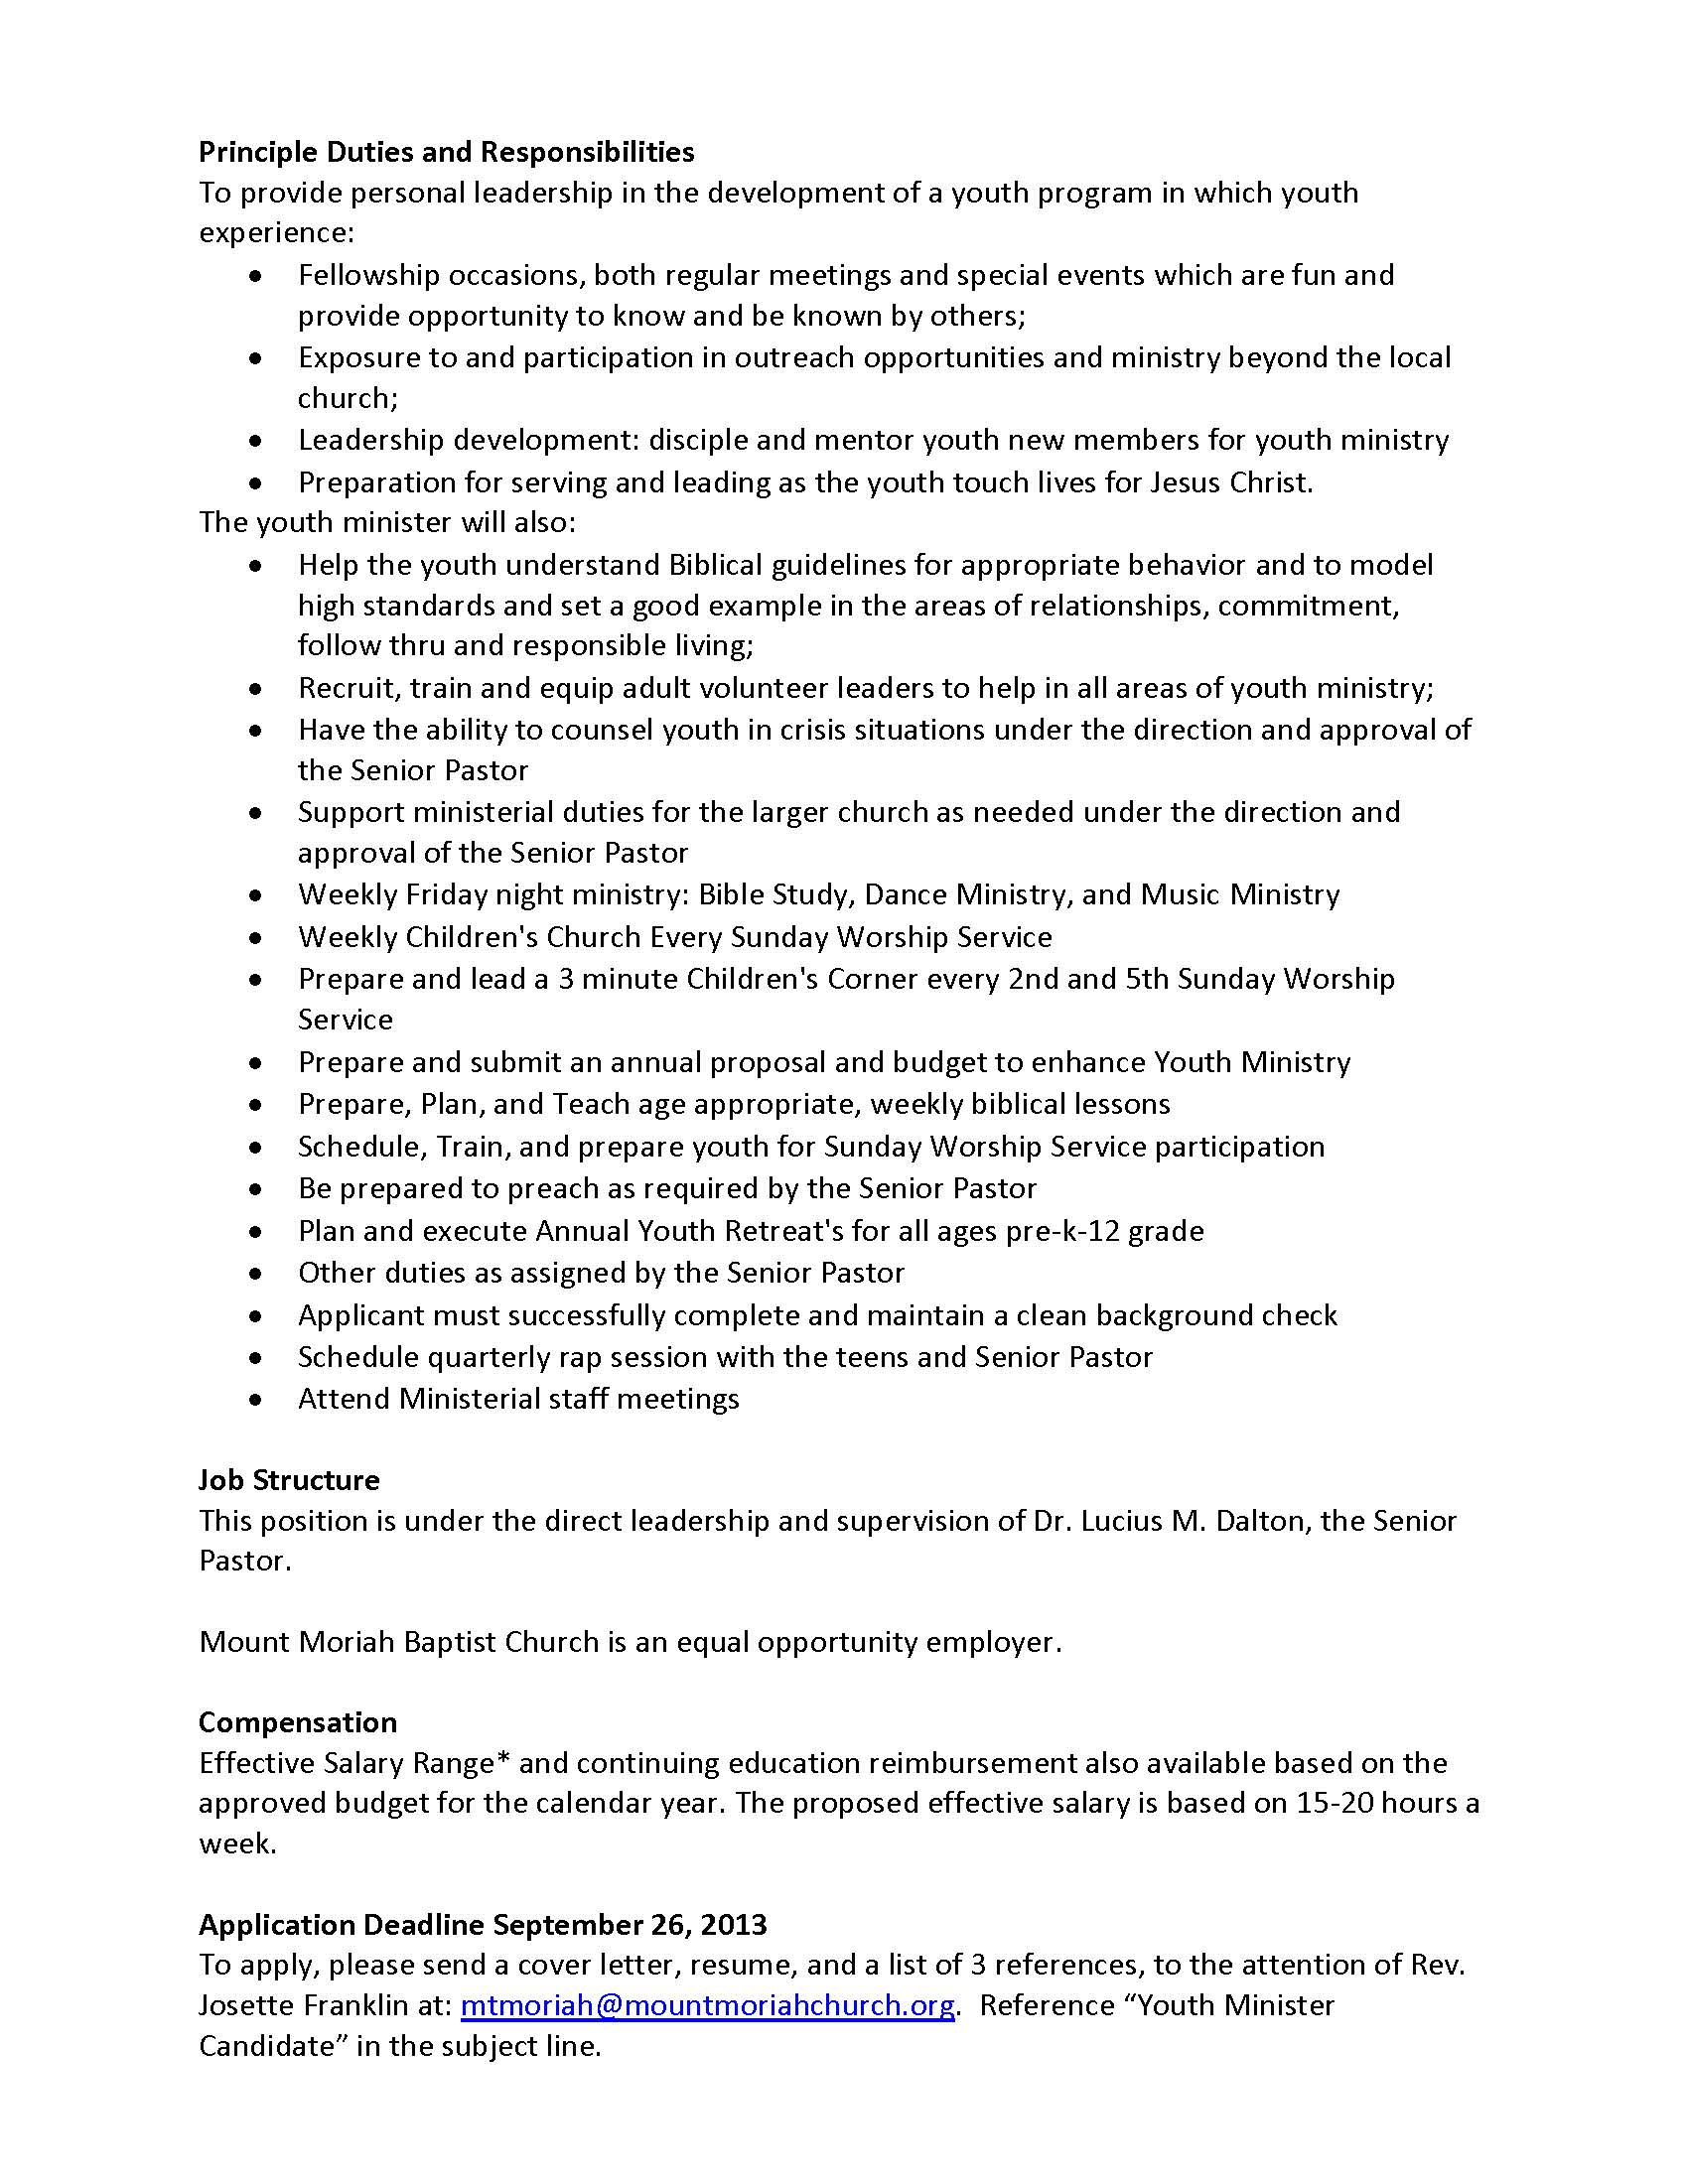 sample leadership resume worship leader resumes contemporary worship leader sample resume pastor cover letter resume cv - Sample Resume For Leadership Position